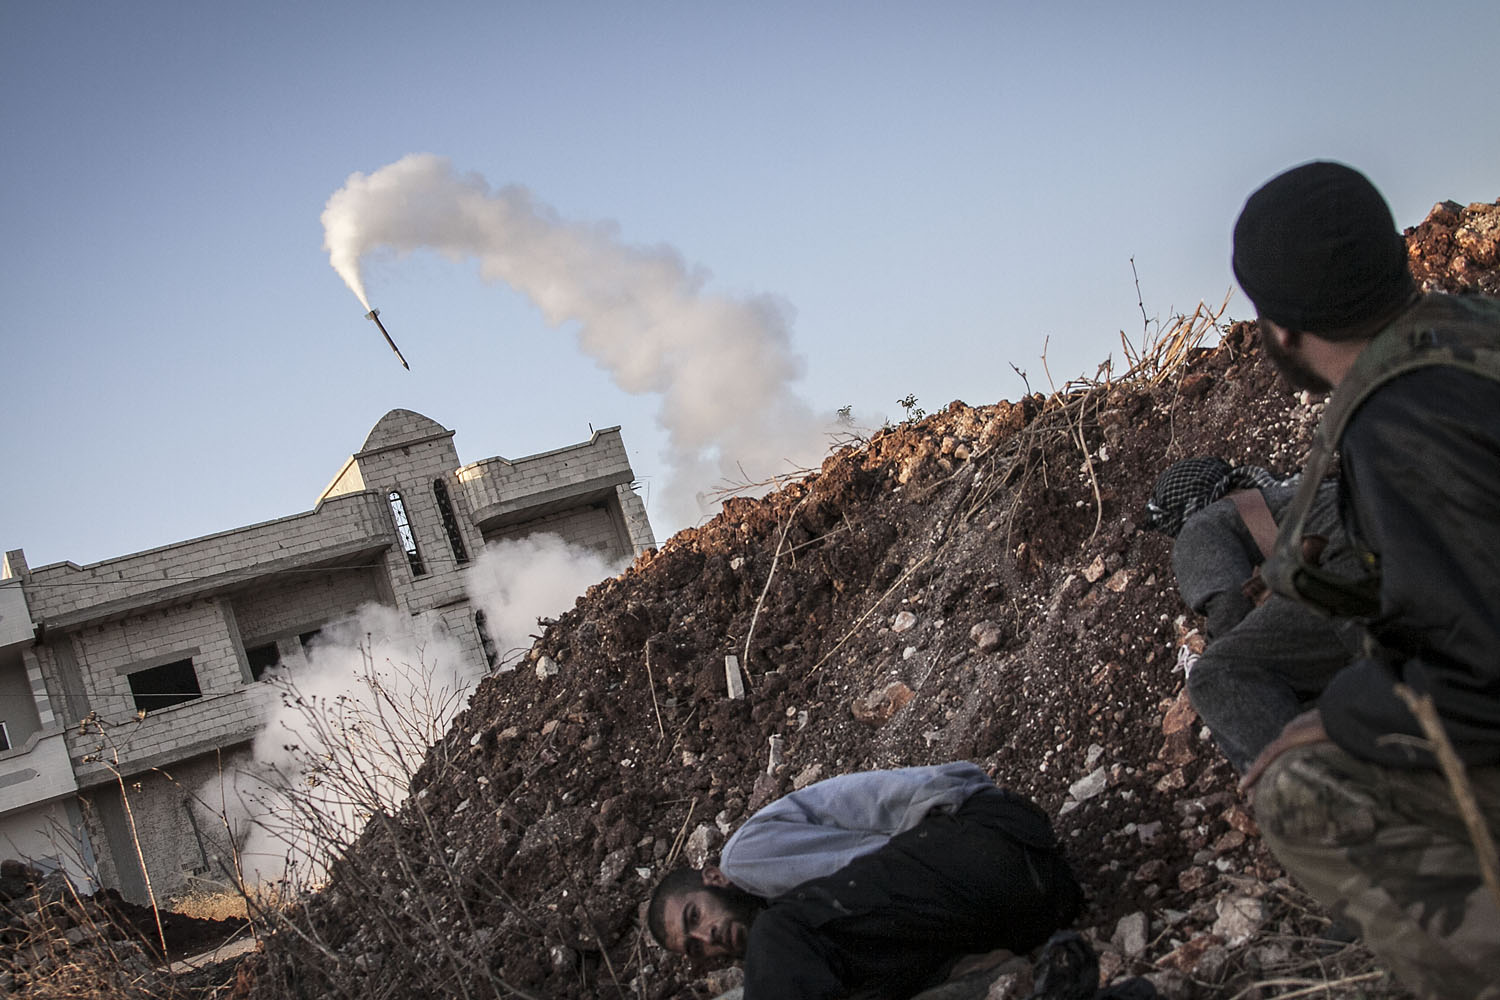 Sept. 20, 2013. Free Syrian Army fighters take cover moments after shelling a rocket on government forces in Kafr Nboudah village, Idlib province, northern Syria.